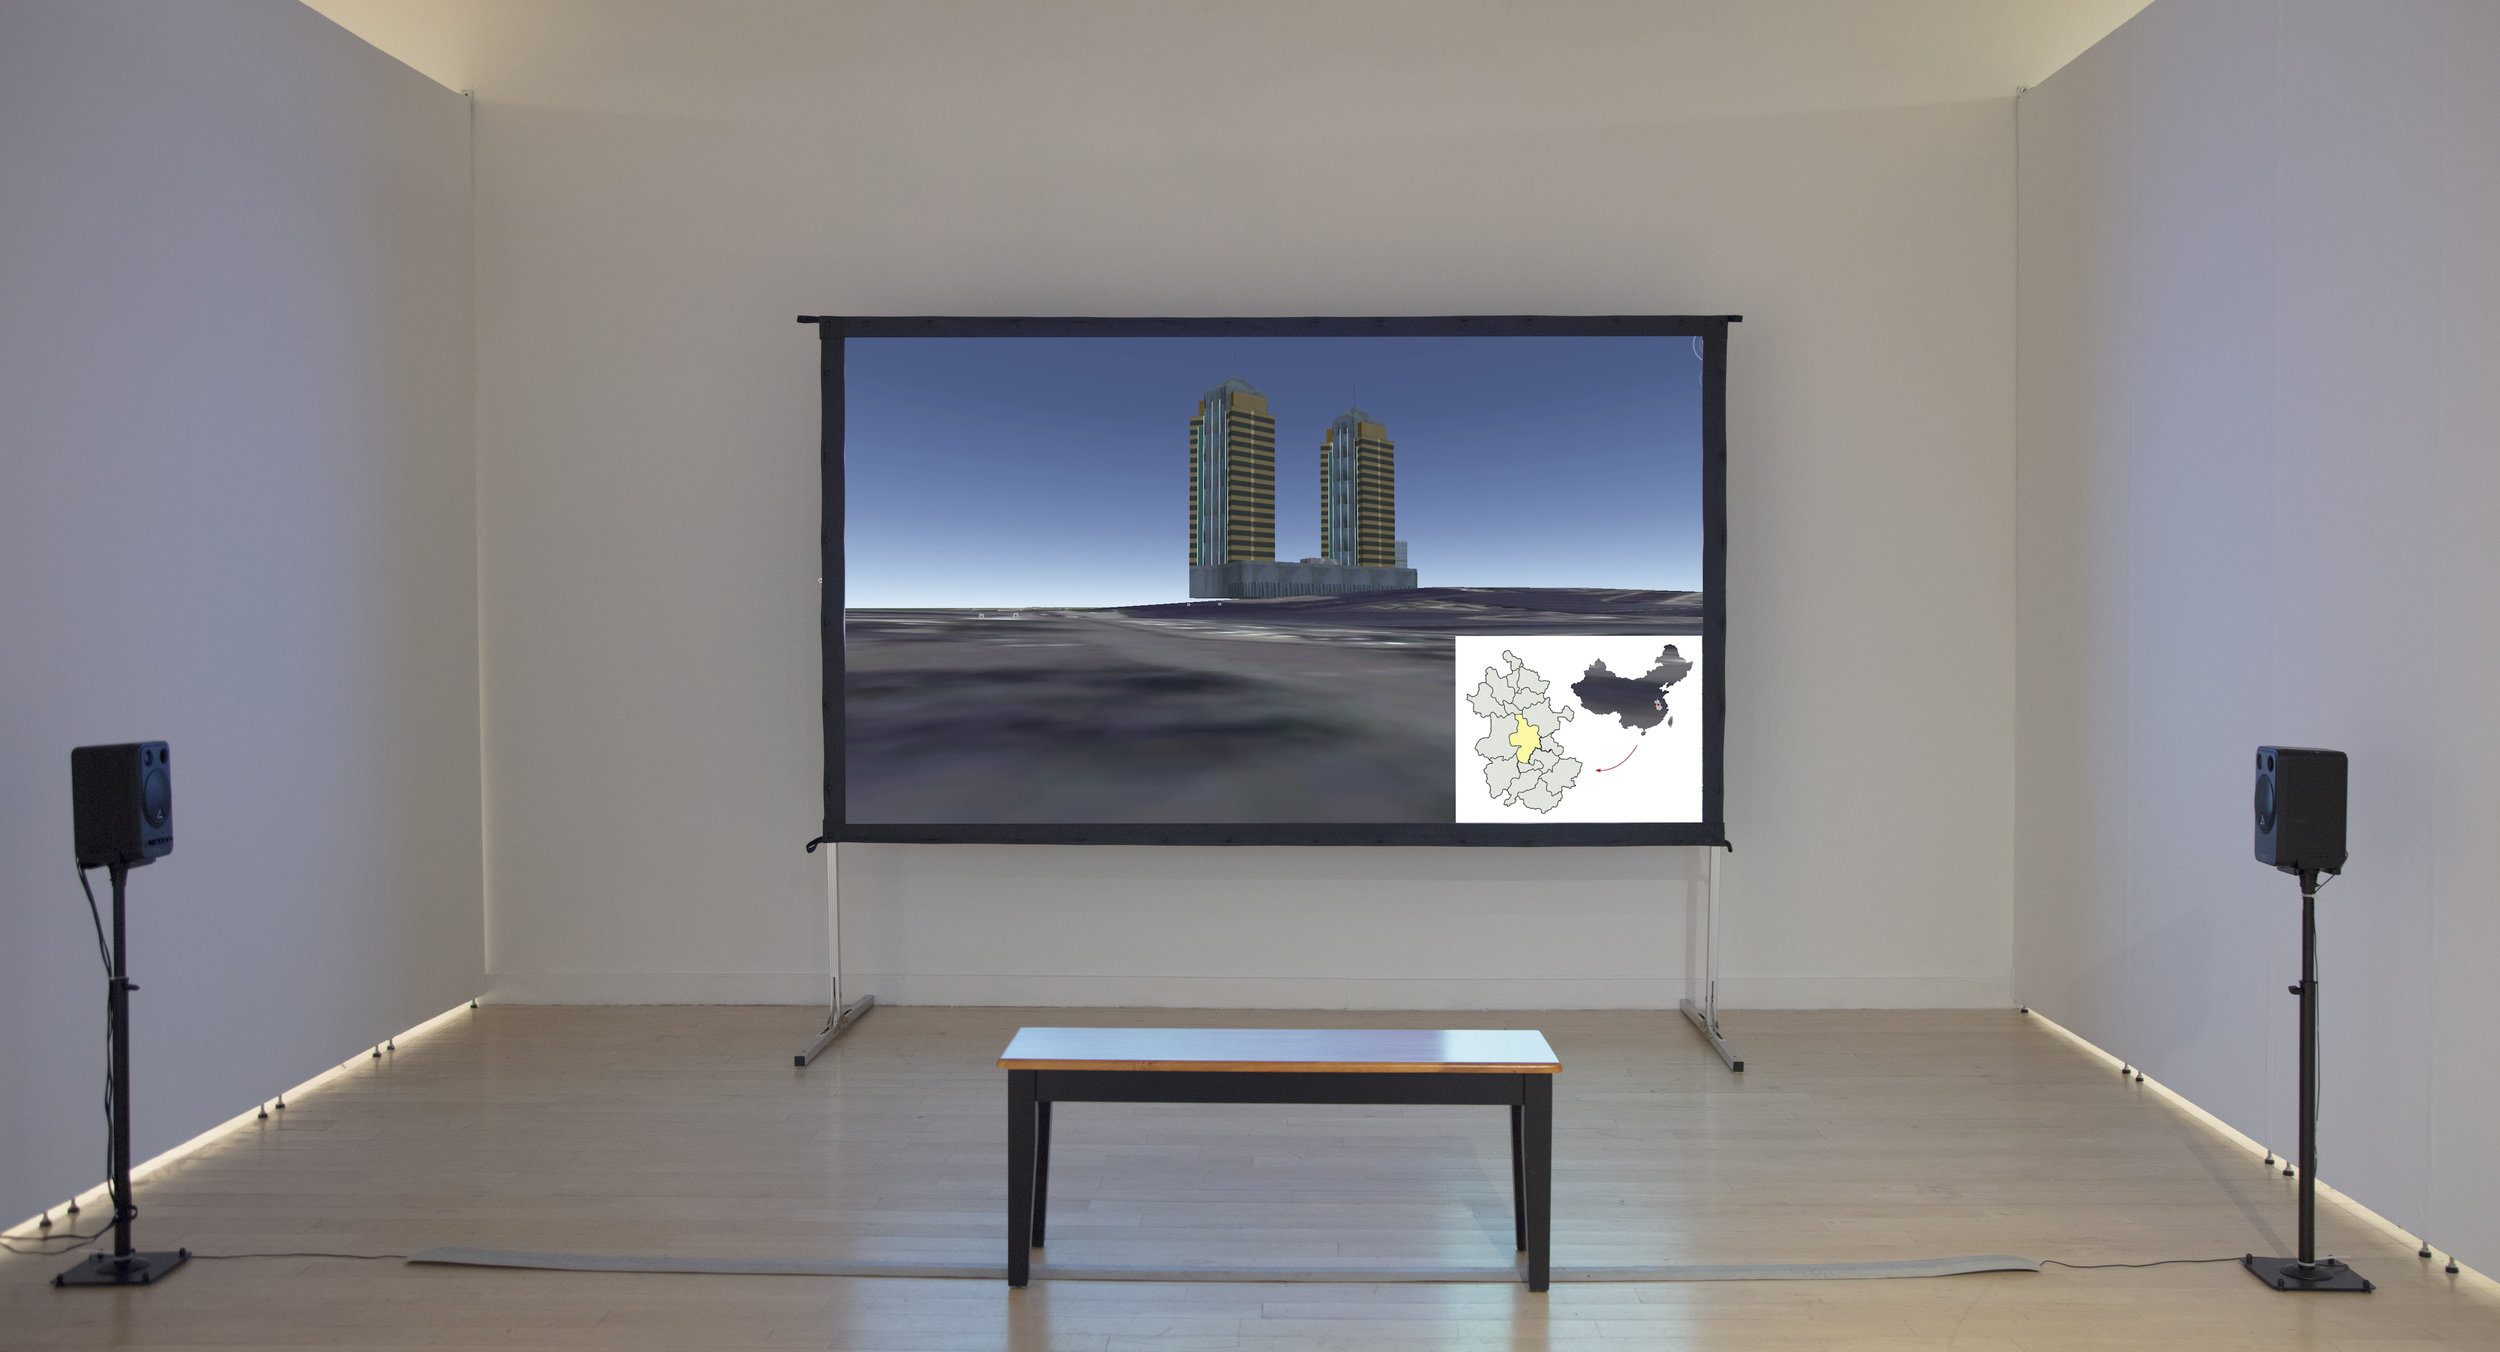 Installation view, T Sheila & Richard Riggs Gallery, Baltimore